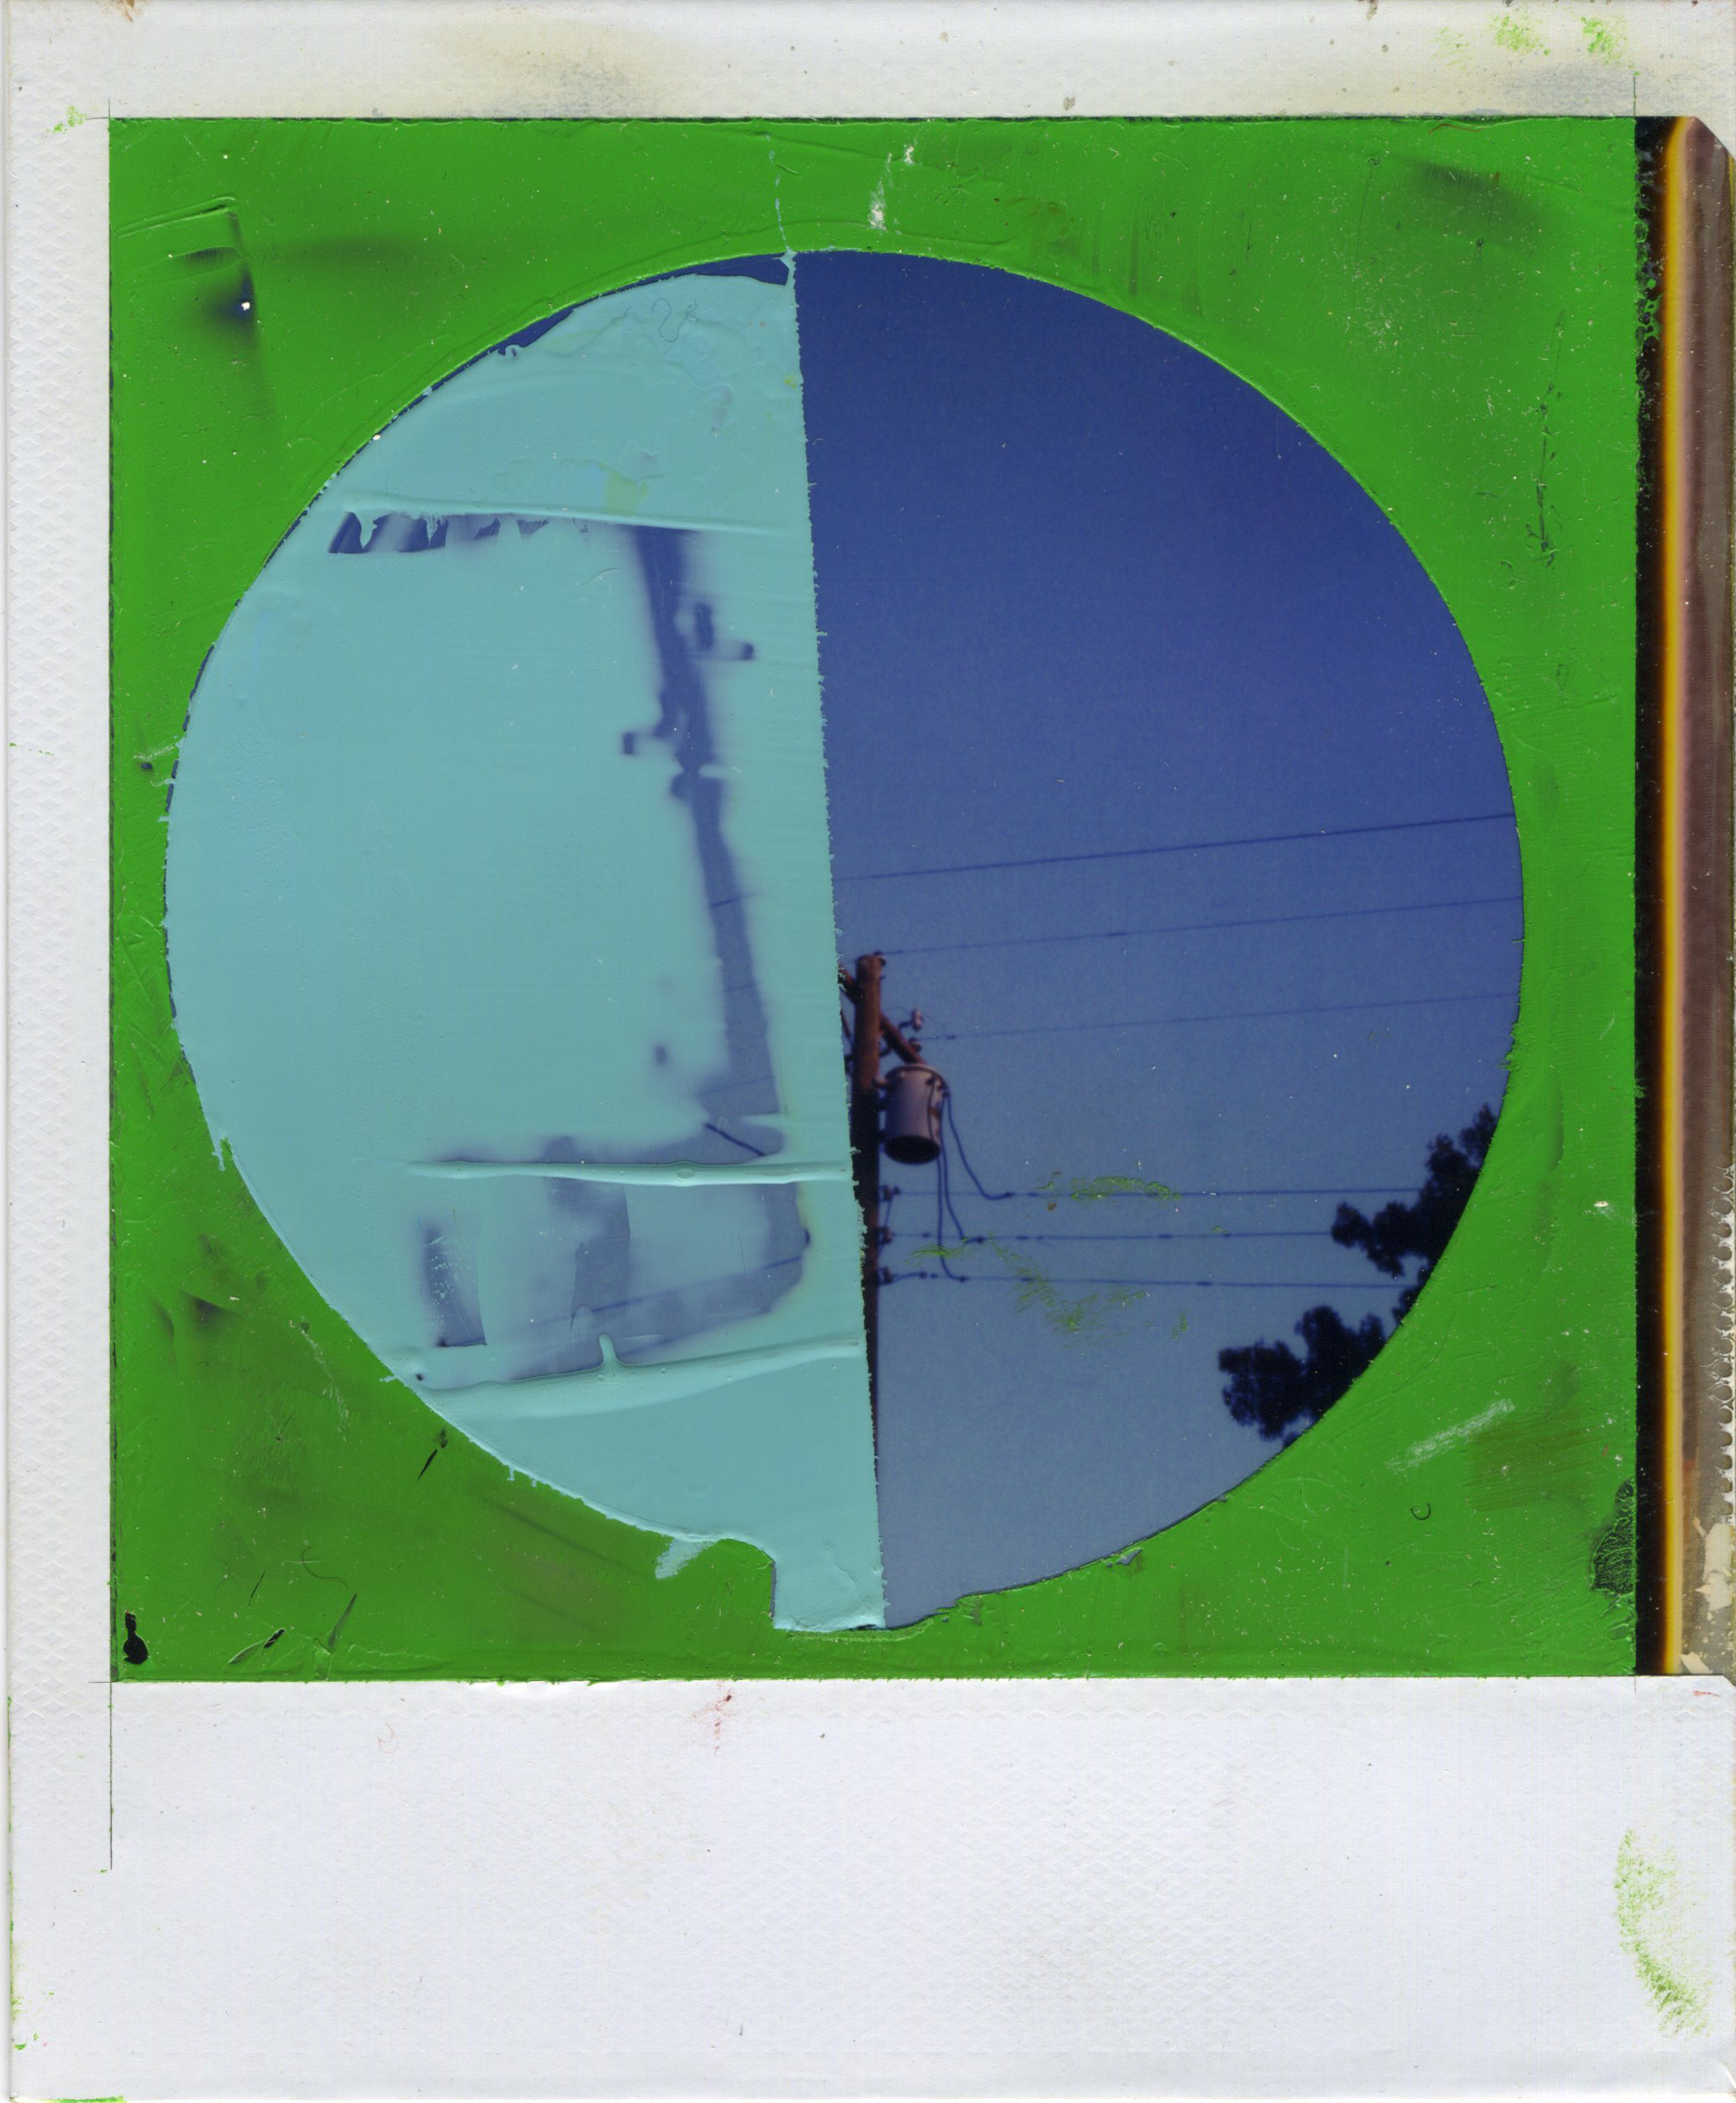 "INTERSECTION (ECLIPSE)   oil on sx-70 Polaroid | 3.25"" x 4.25"" 